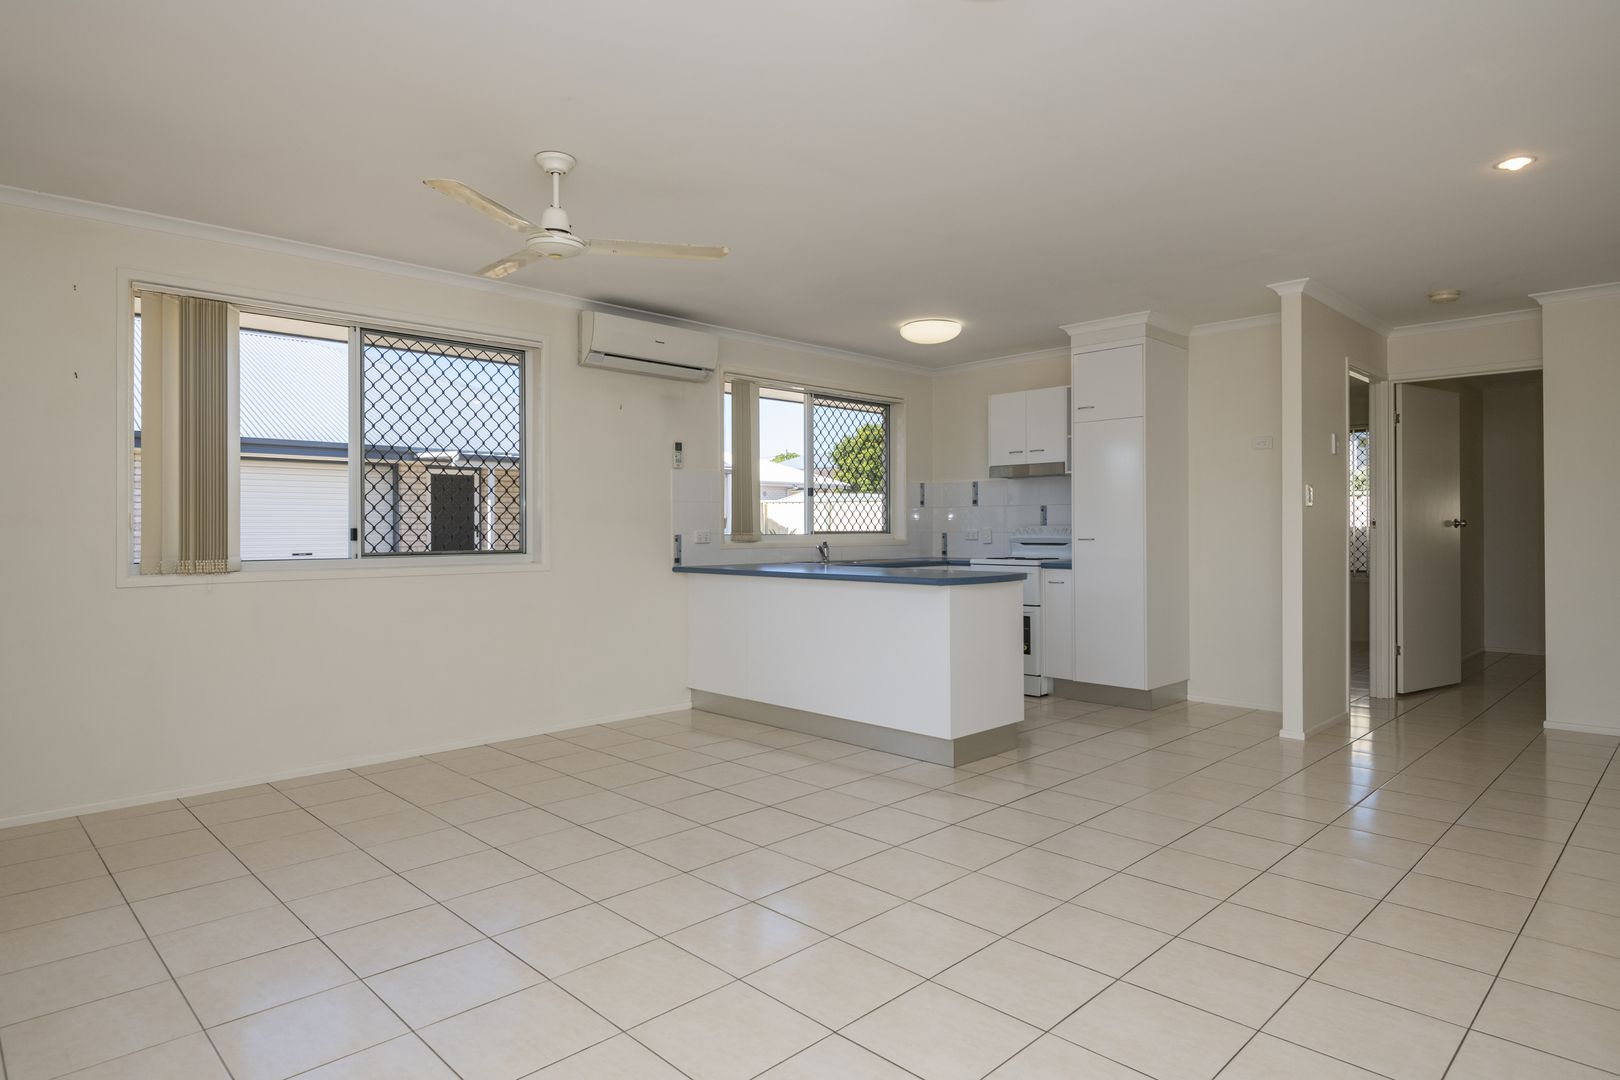 2/6 Water Street, Bundaberg South QLD 4670, Image 1